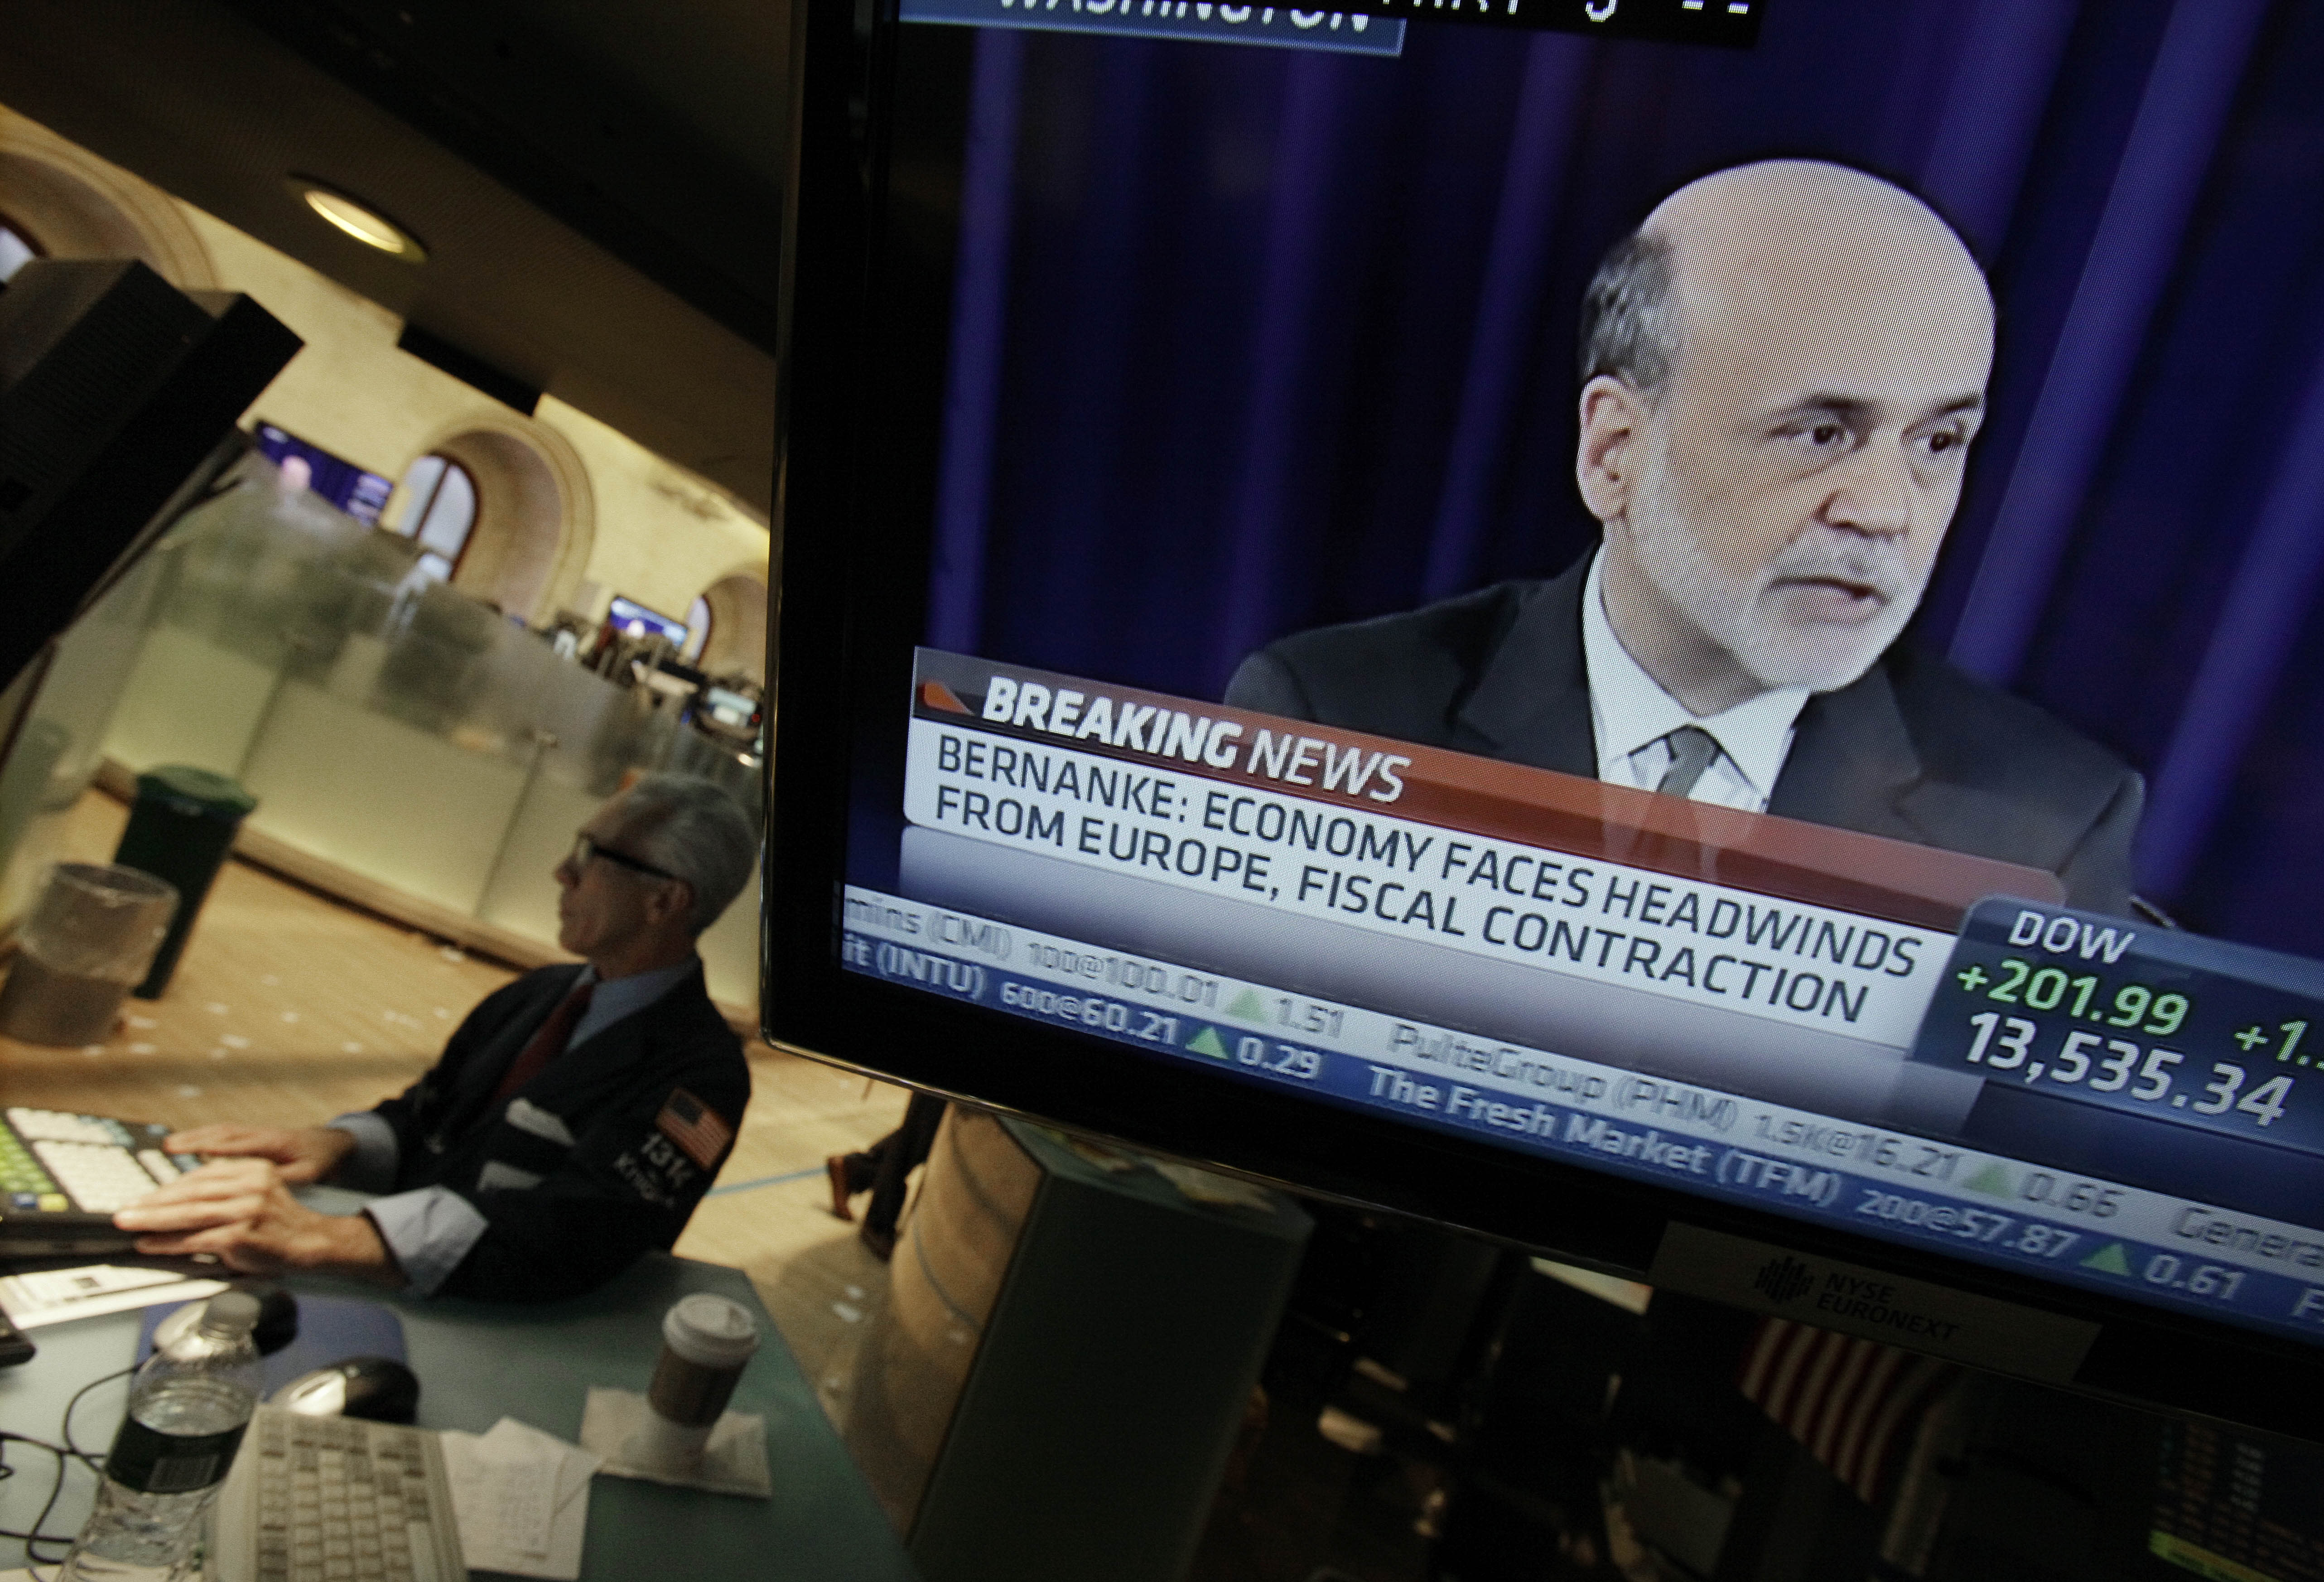 FILE - In this Thursday, Sept. 13, 2012 file photo, Specialist David Pologruto works at his post on the floor of the New York Stock Exchange, as Federal Reserve Chairman Ben Bernanke holds a news conference in Washington, Thursday, Sept. 13, 2012. No sooner did the Federal Reserve unveil a bold plan to juice the U.S. economy than it dangled the prospect of doing even more. Investors celebrated by sending stock prices jumping. Economists were less impressed. Many wonder how much the Fed's action would help. (AP Photo/Richard Drew, File)